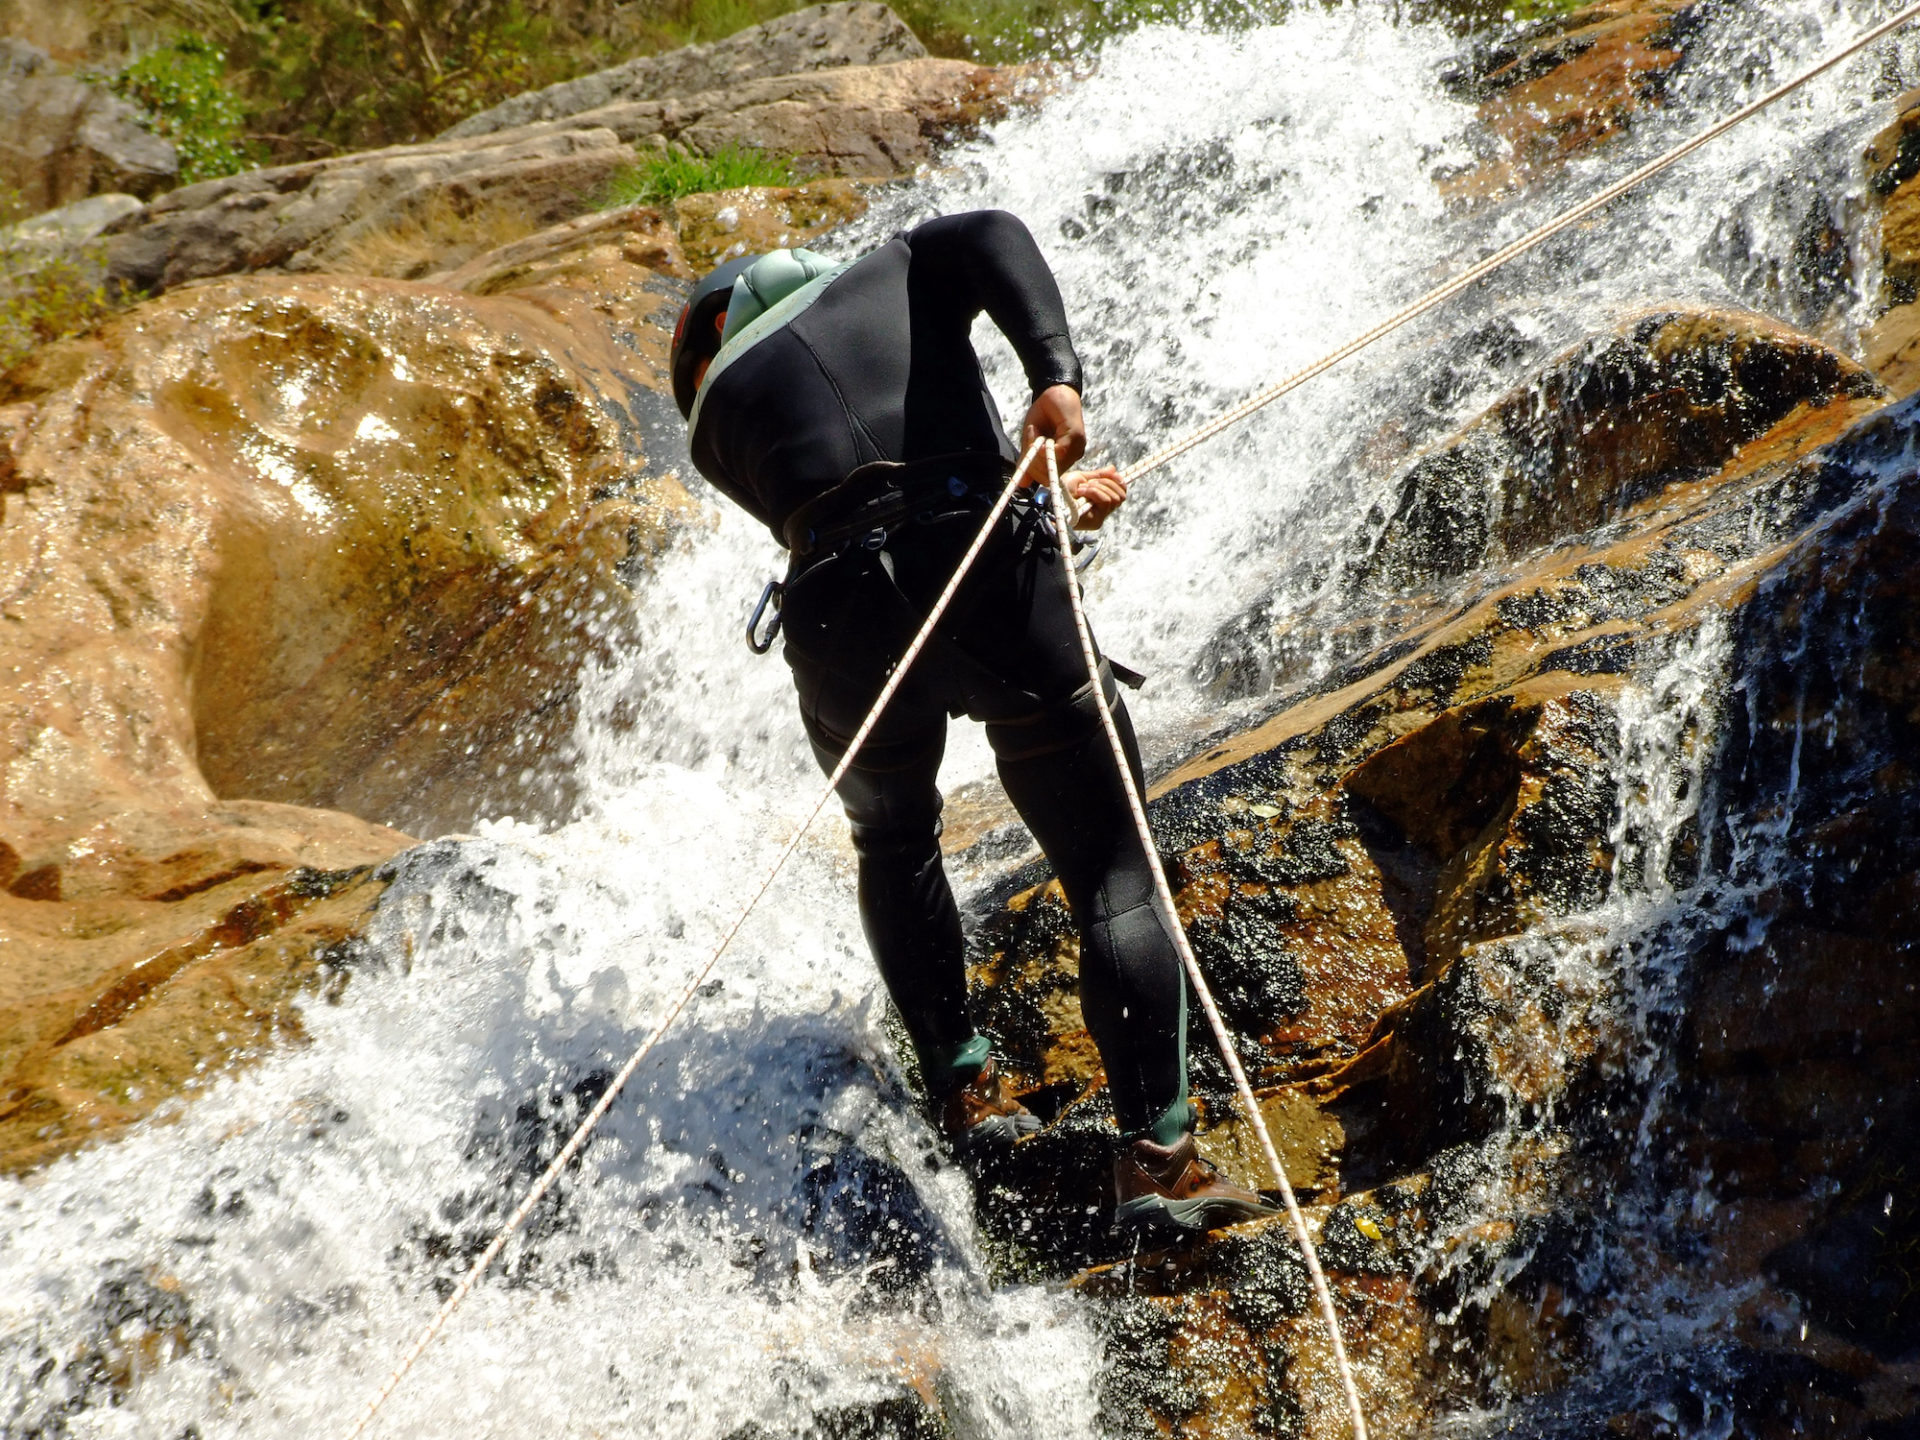 Portugal, Canyoning